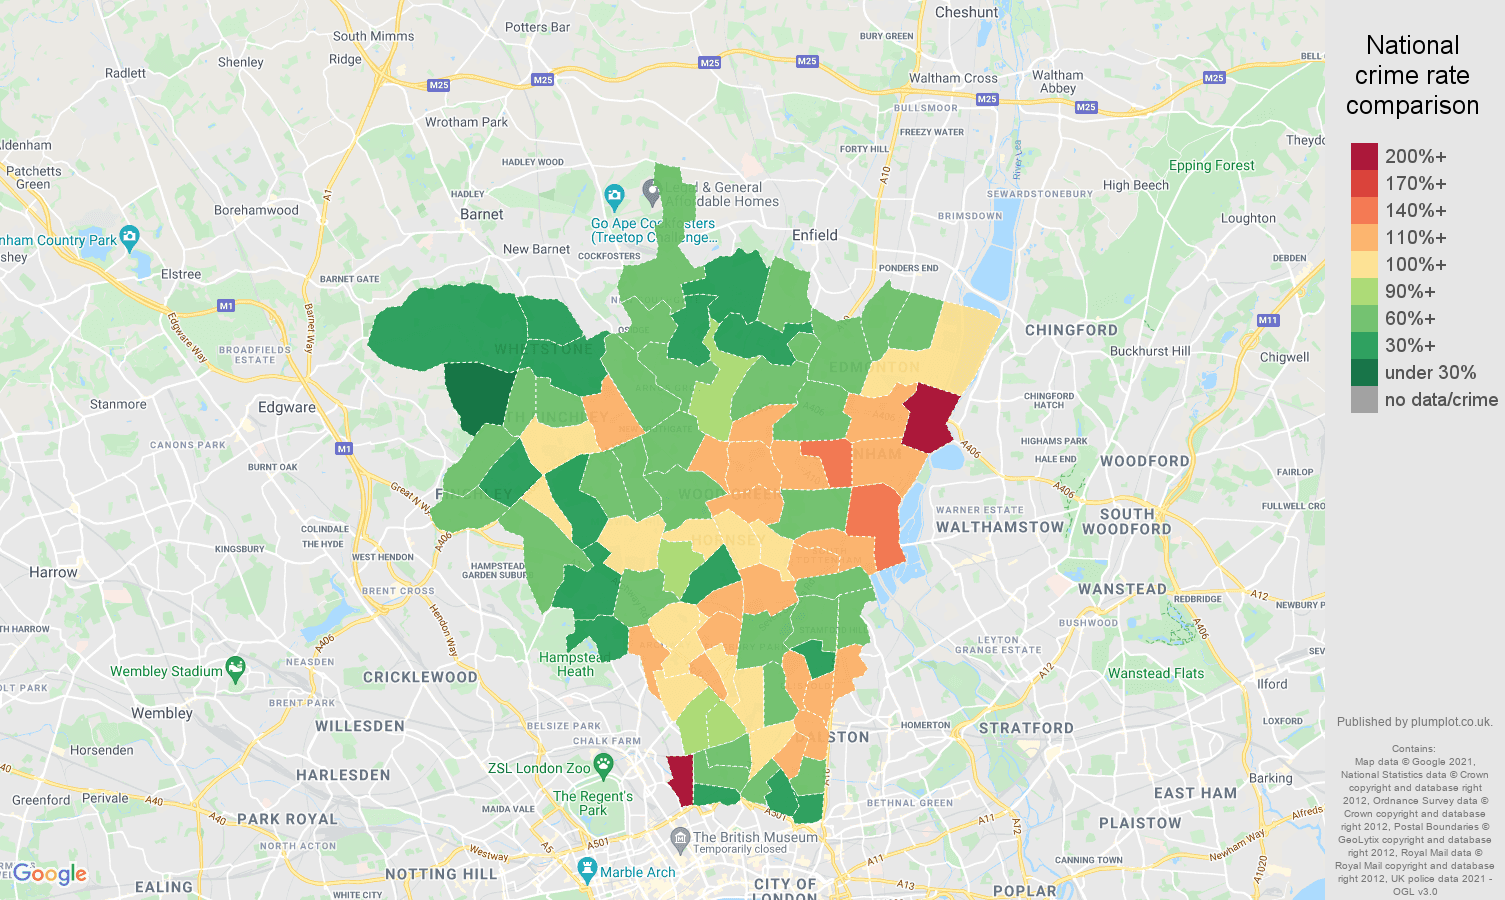 North London criminal damage and arson crime rate comparison map